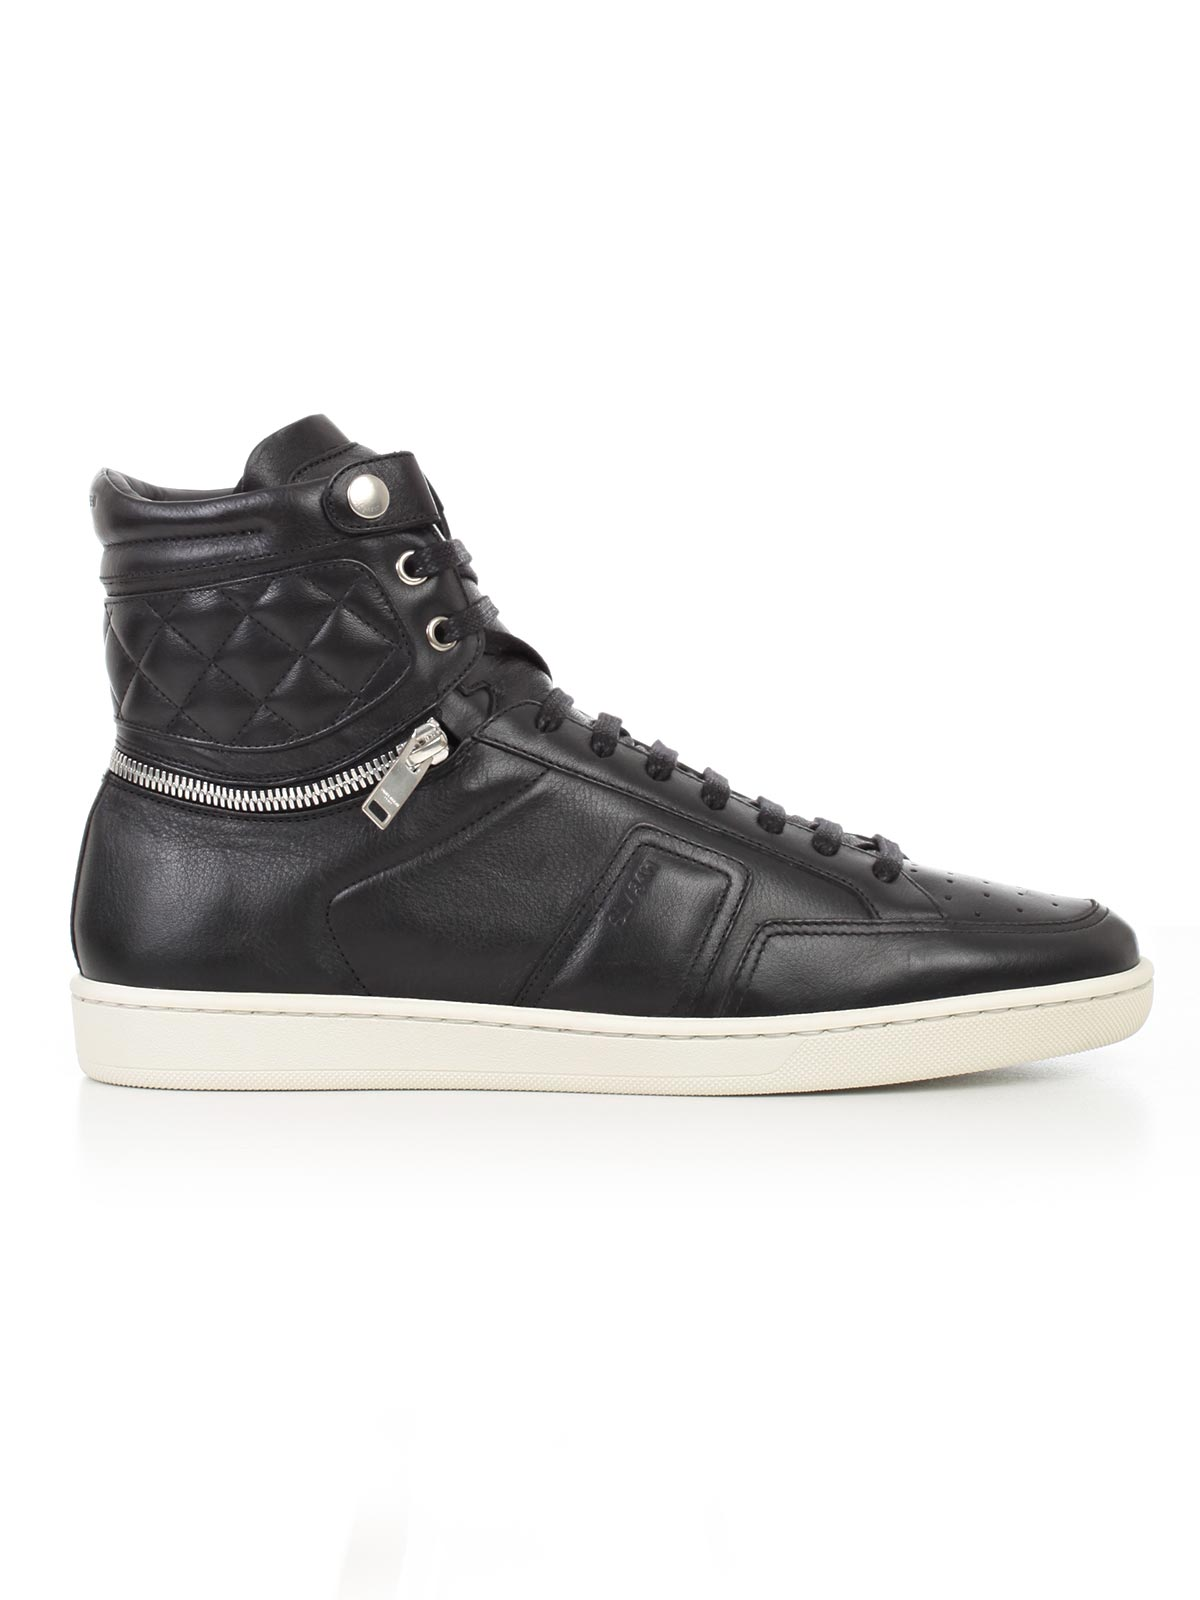 Picture of SAINT LAURENT FOOTWEAR SNEAKERS ALTA